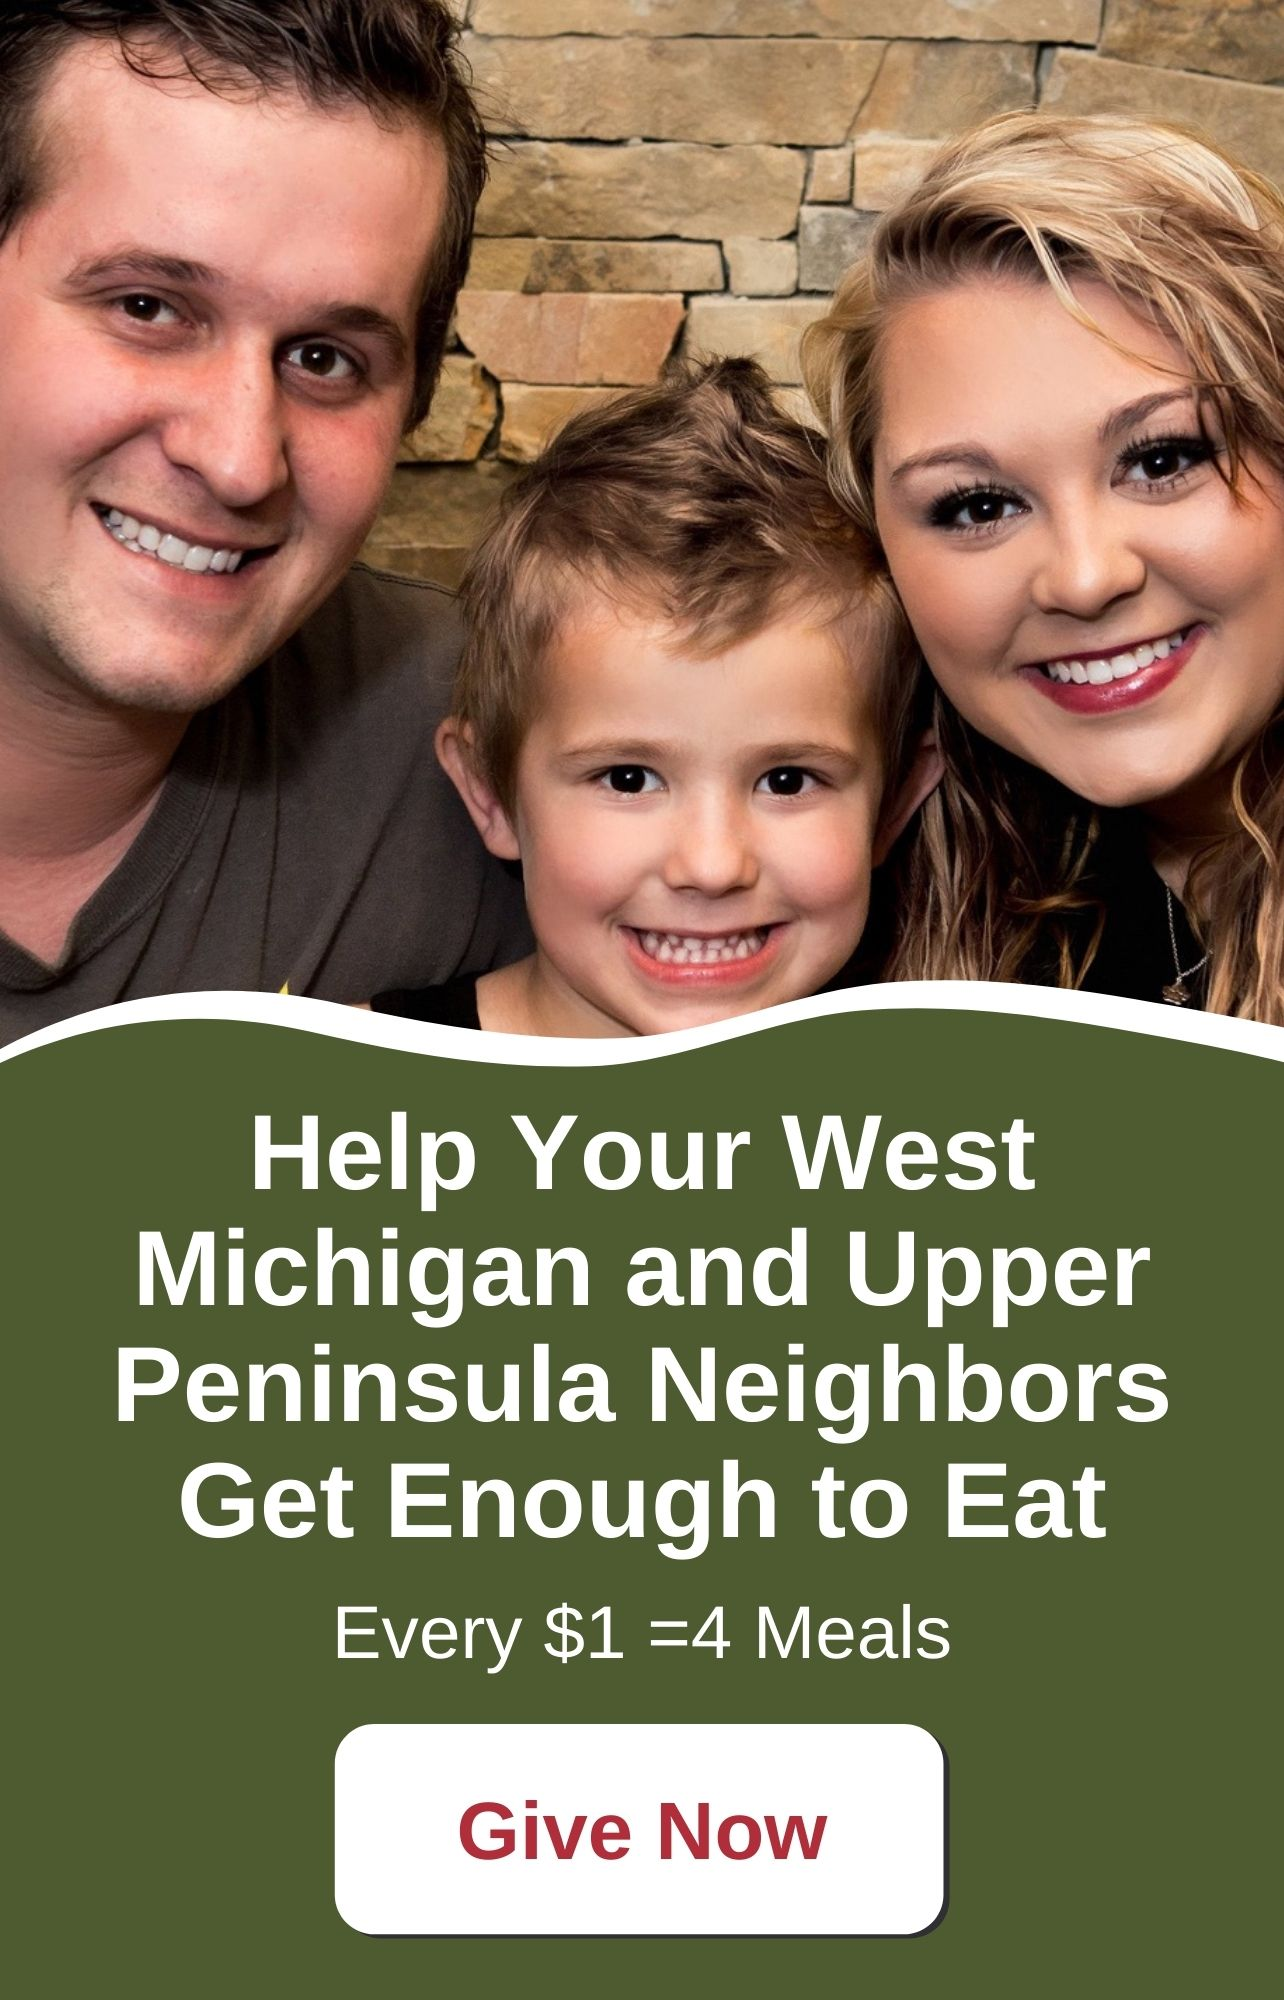 Help Your West Michigan and Upper Peninsula Neighbors Get Enough to Eat